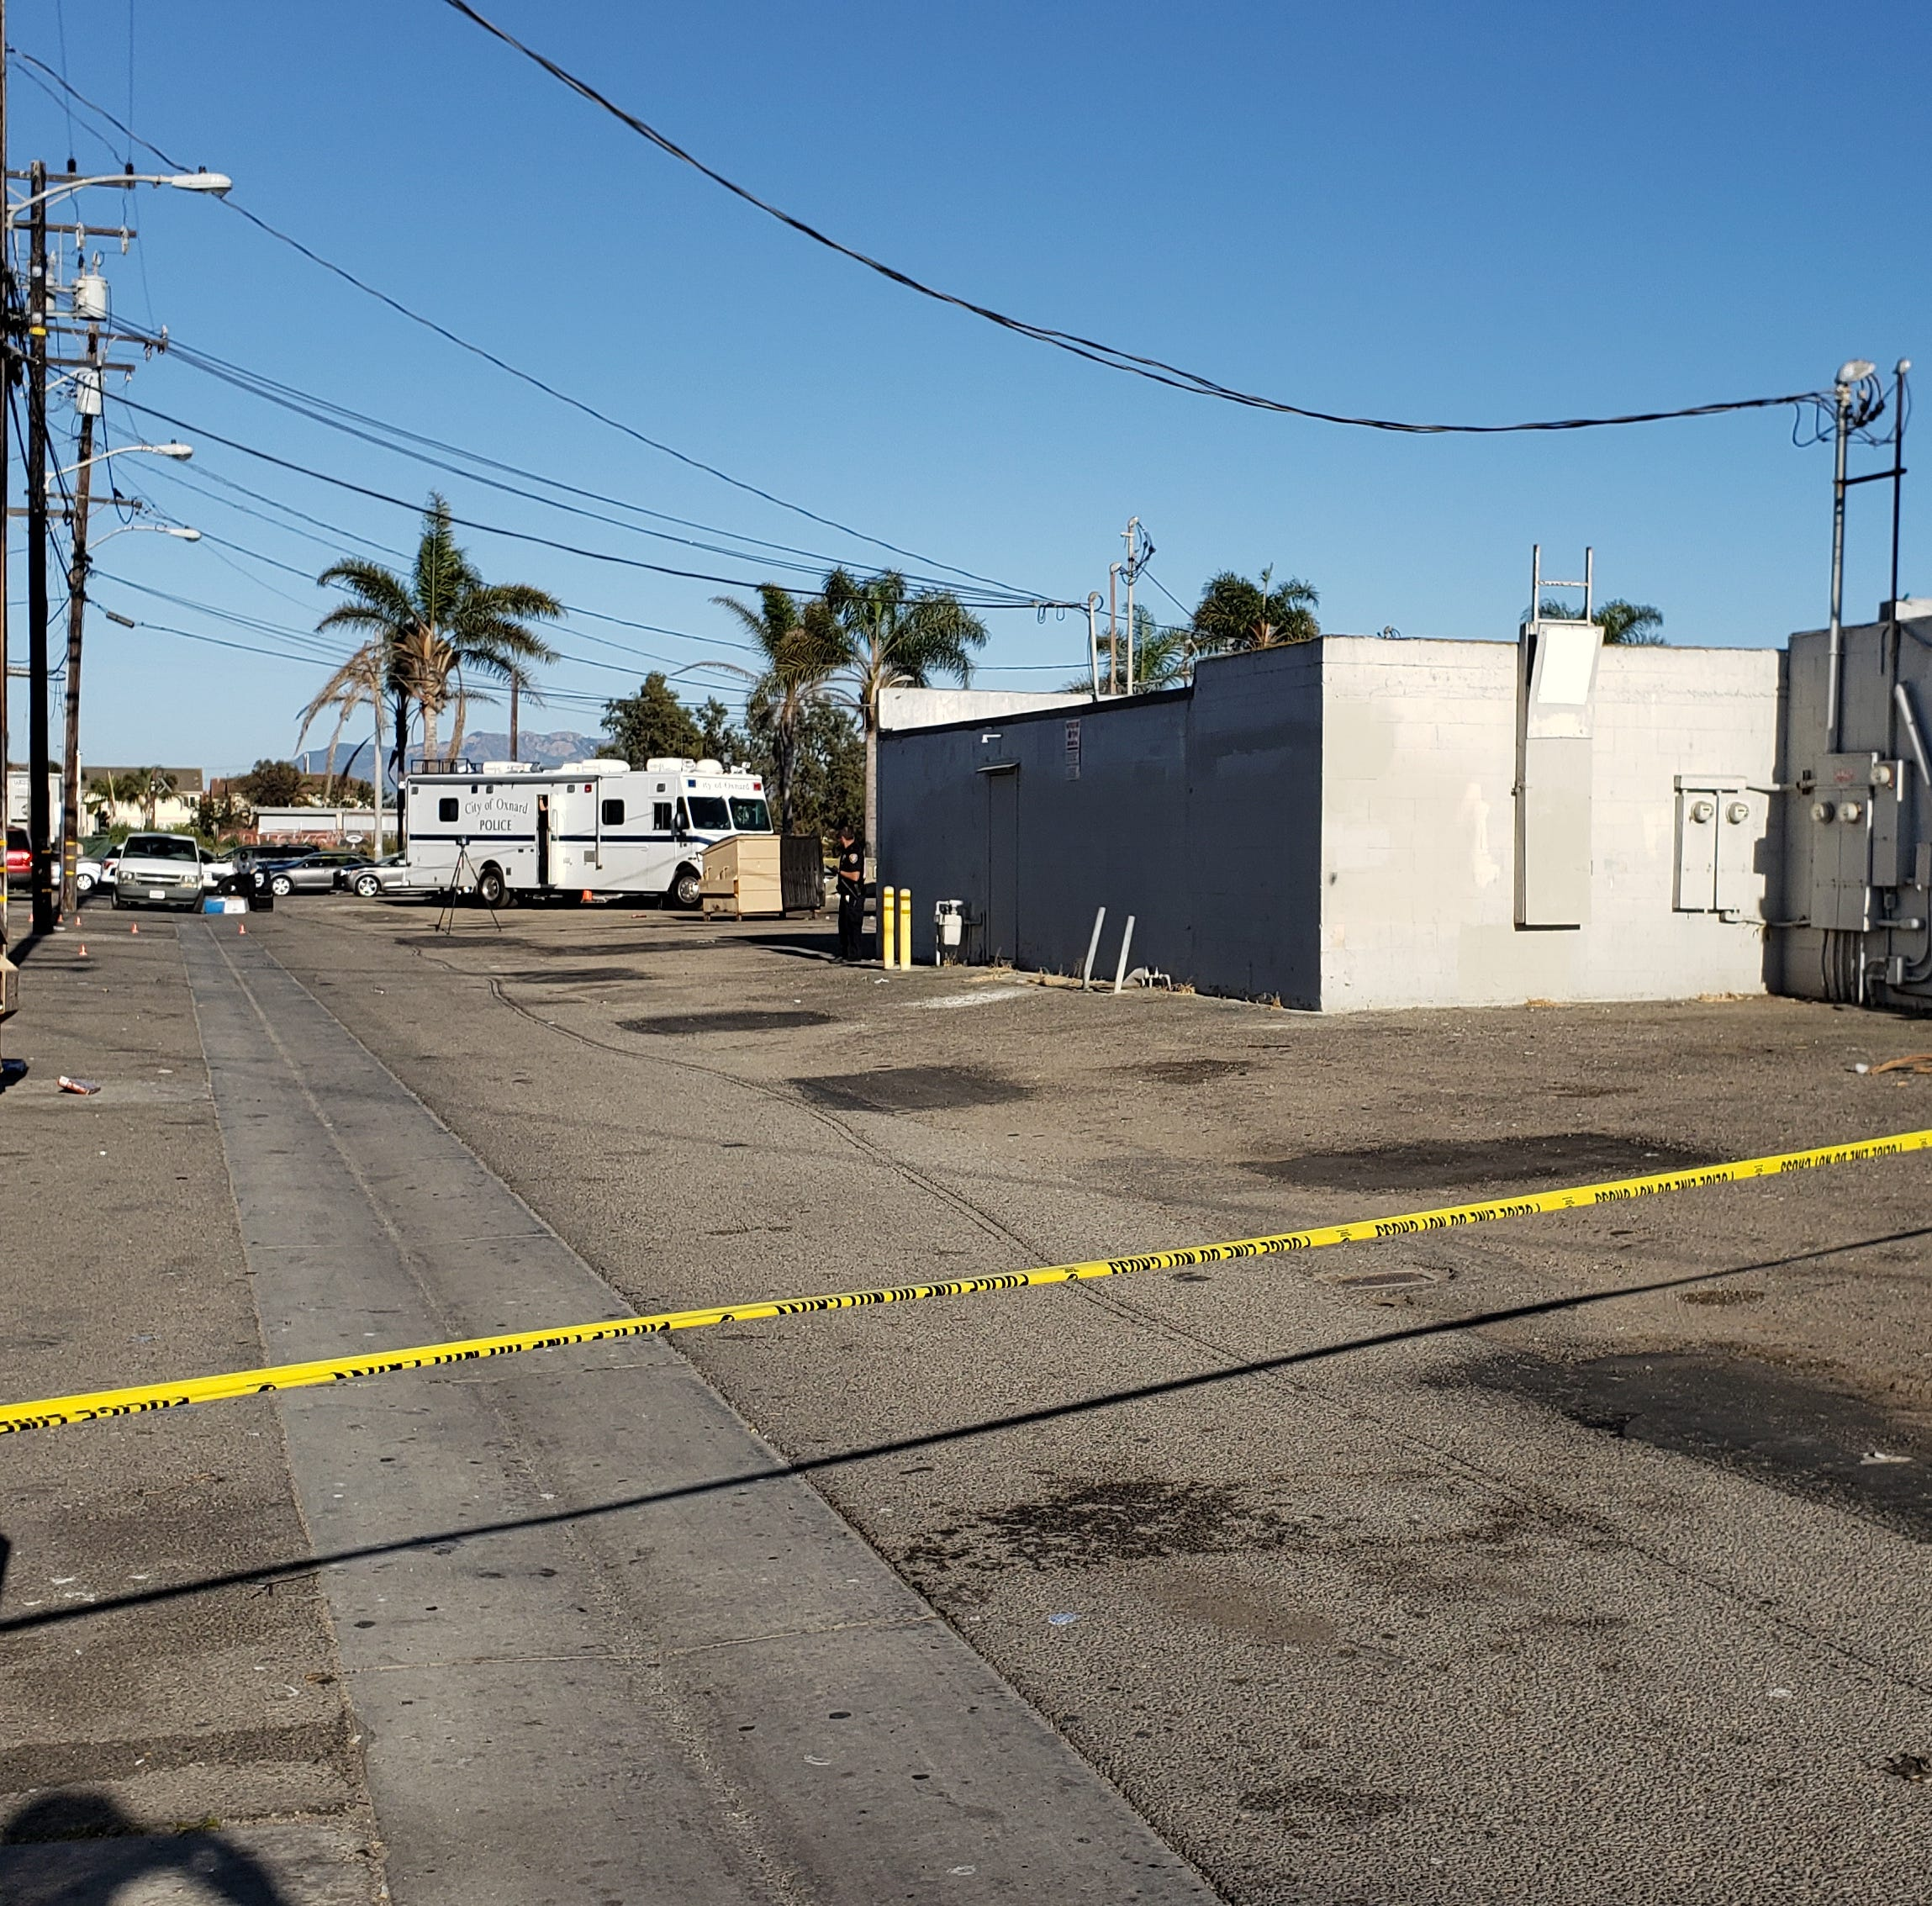 37-year-old man killed in south Oxnard shooting